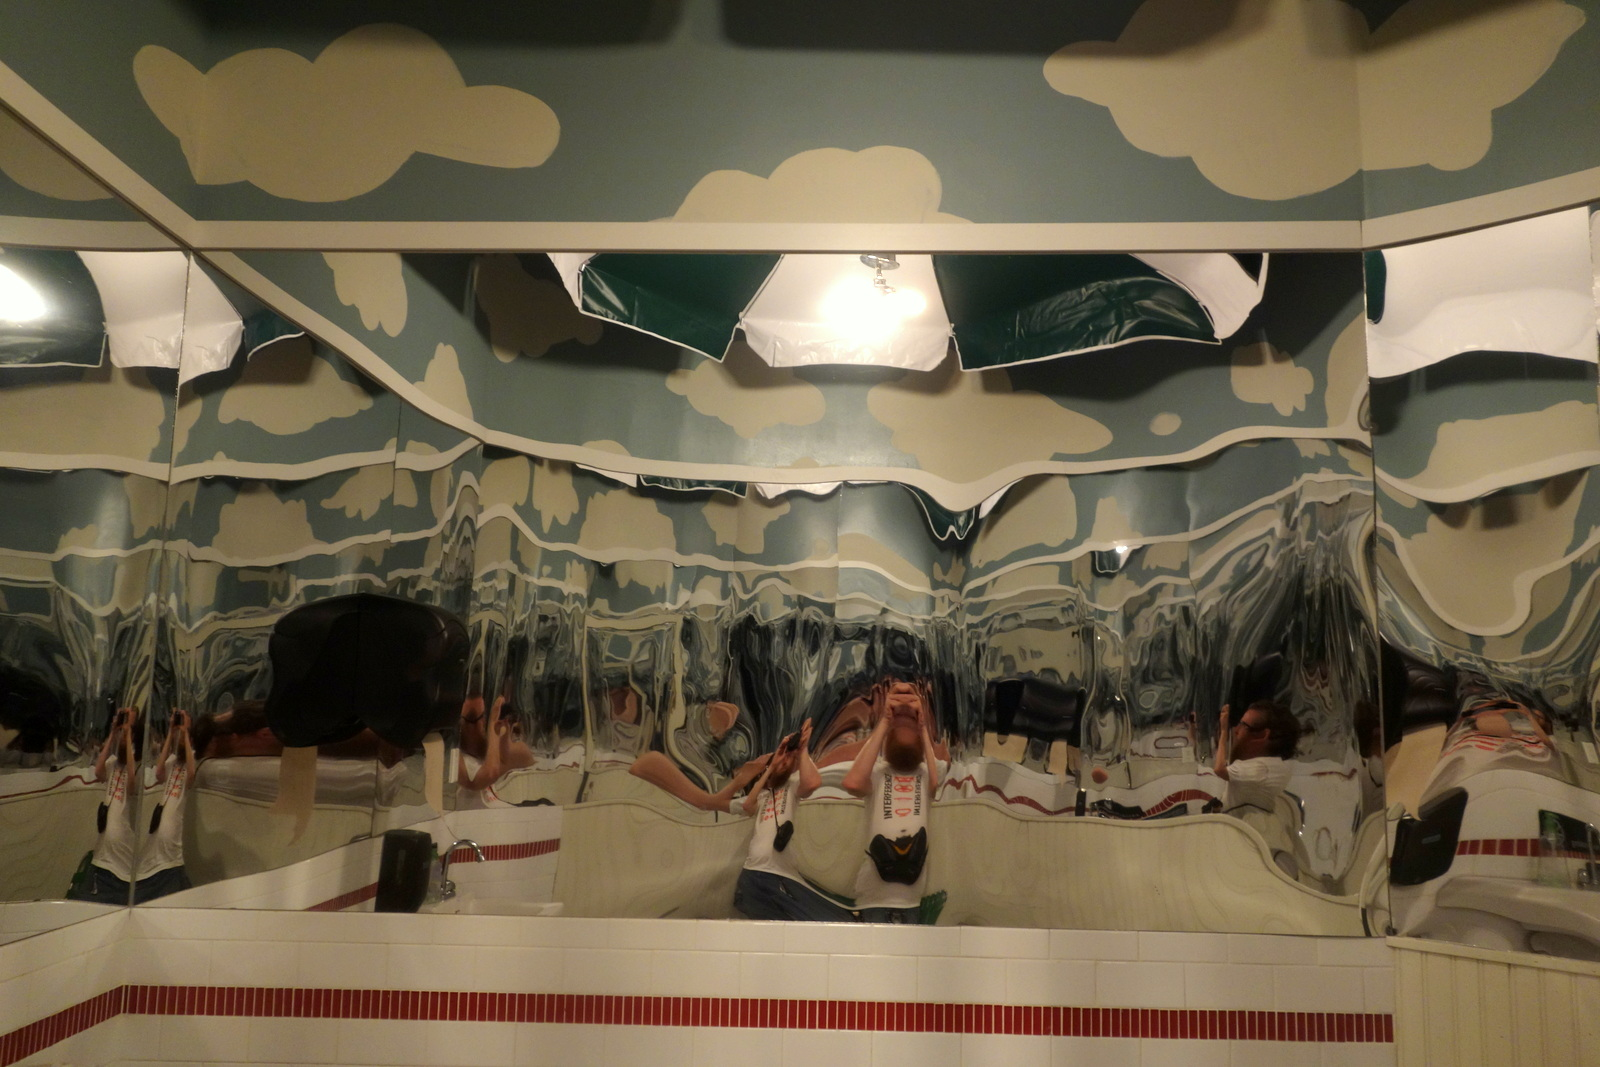 Red Hook Lobster Pound - trippy bathroom mirrors